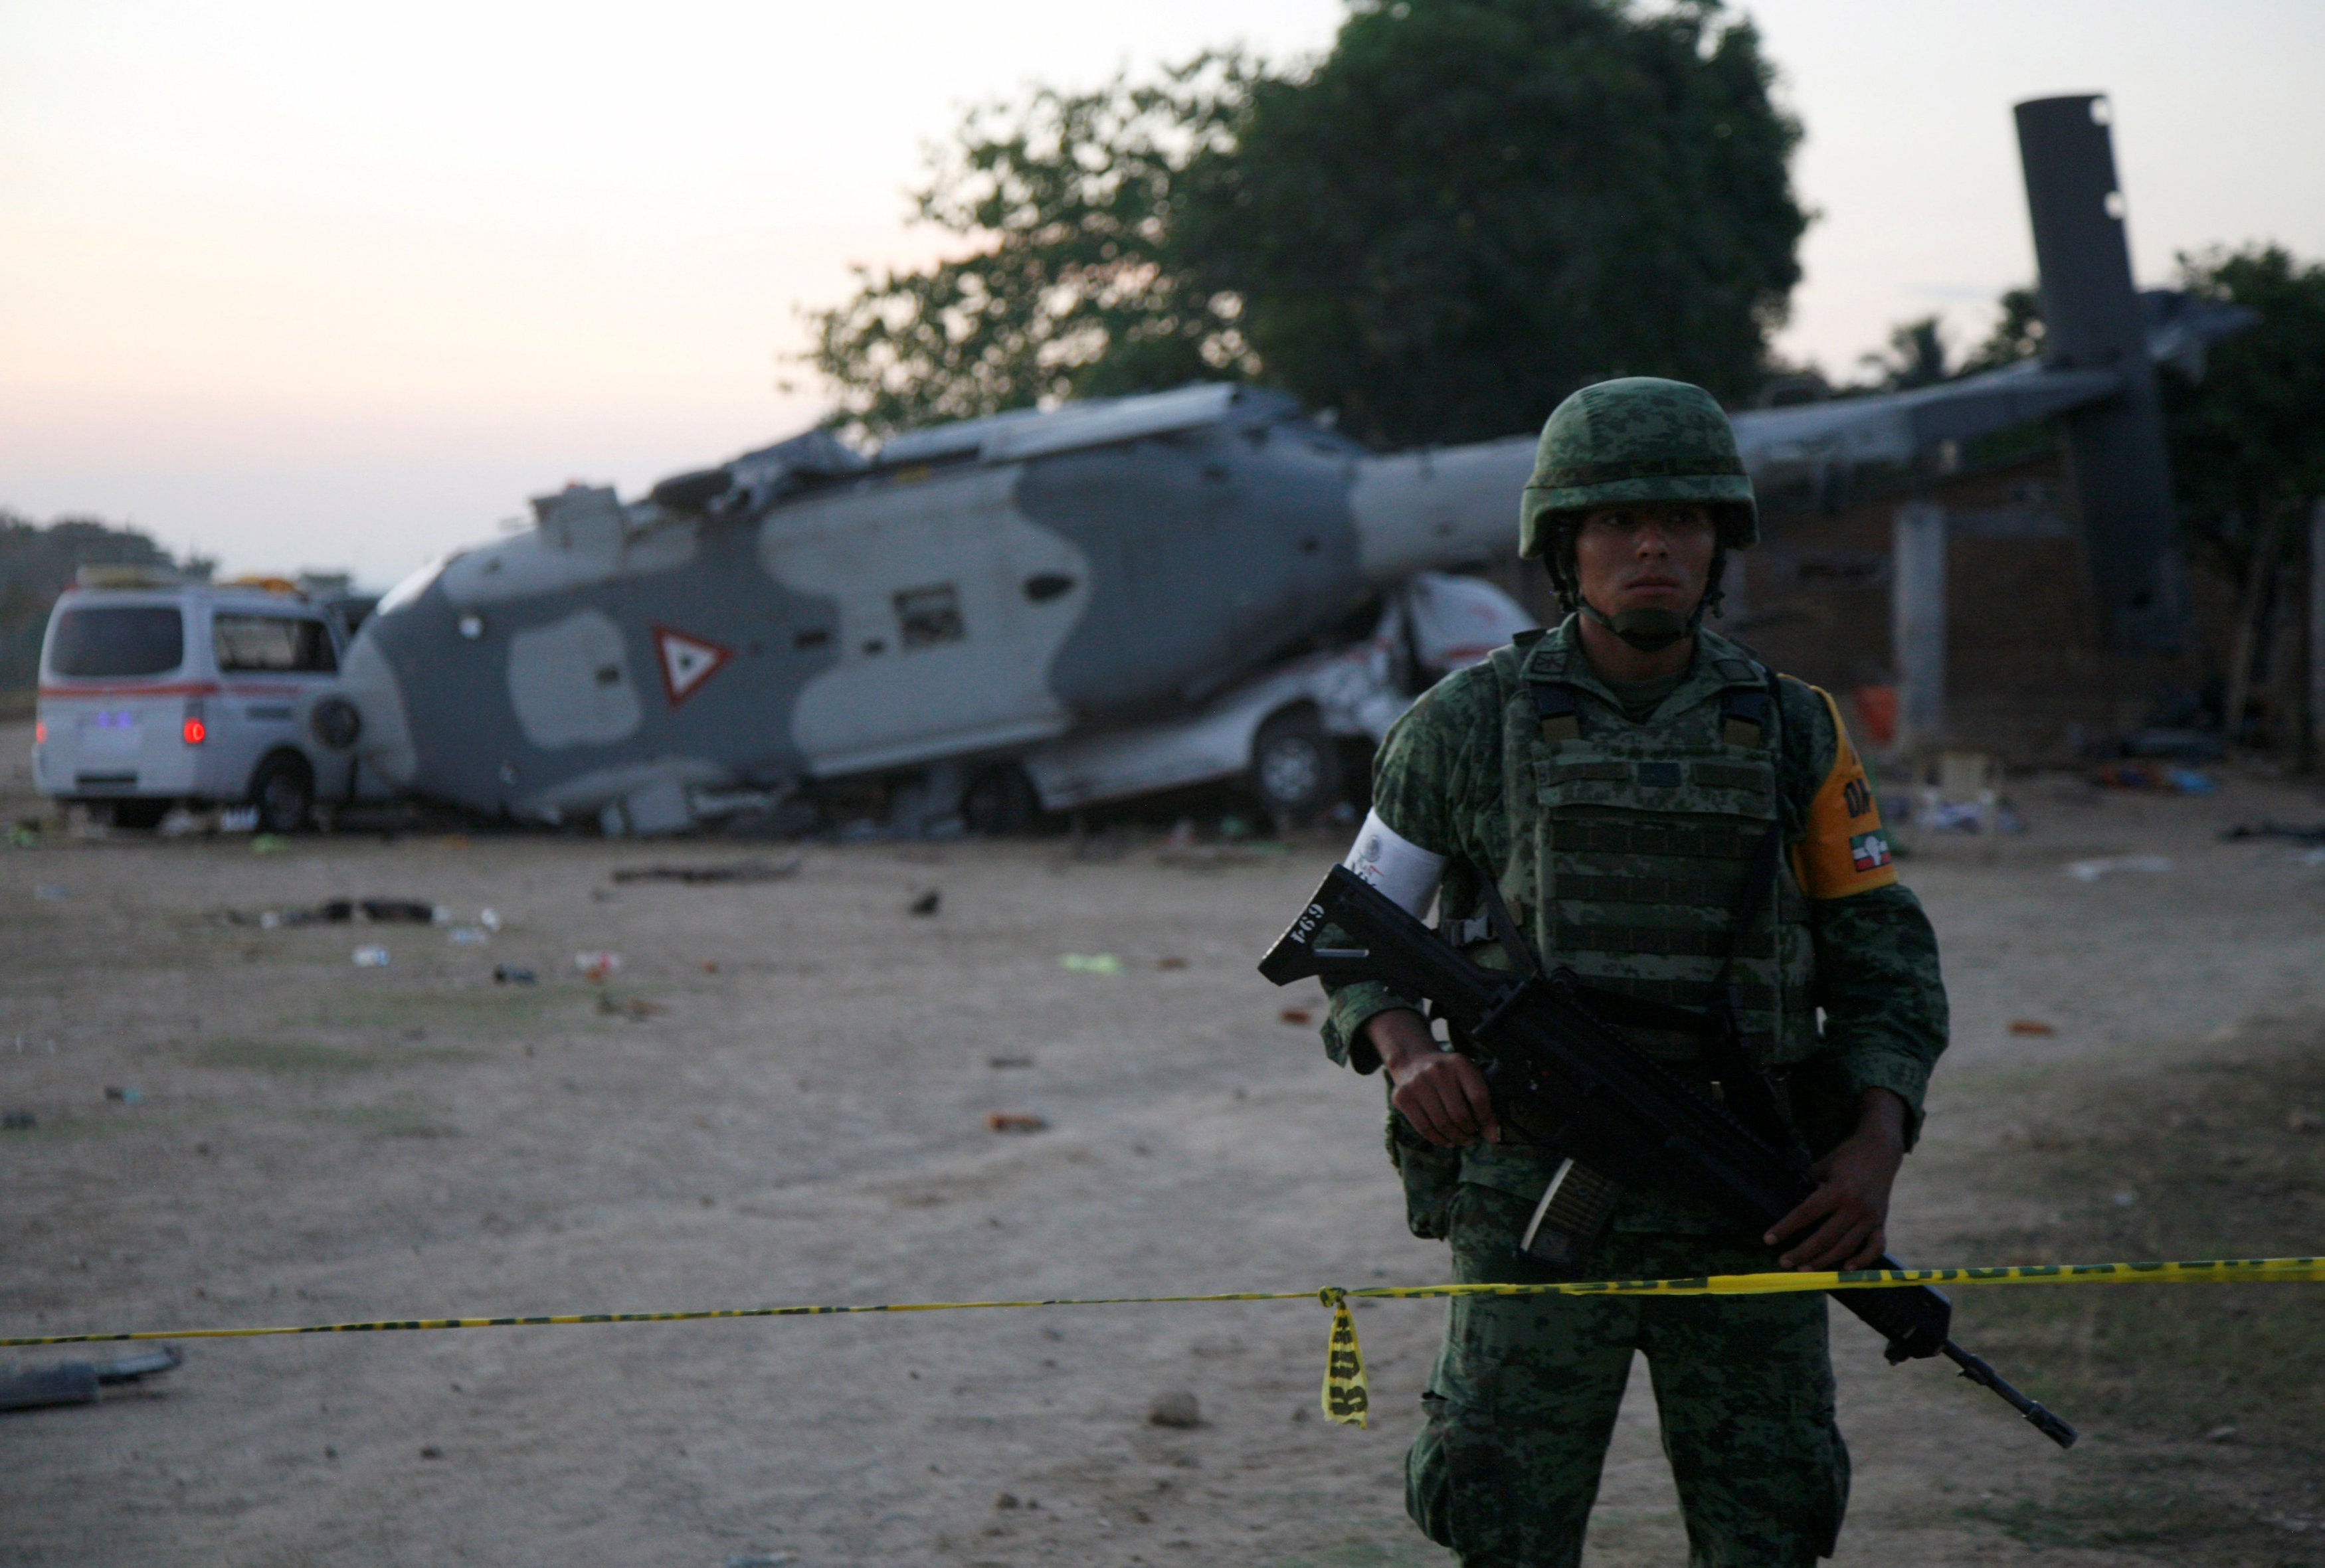 A soldier stands guard next to a military helicopter, carrying Mexico